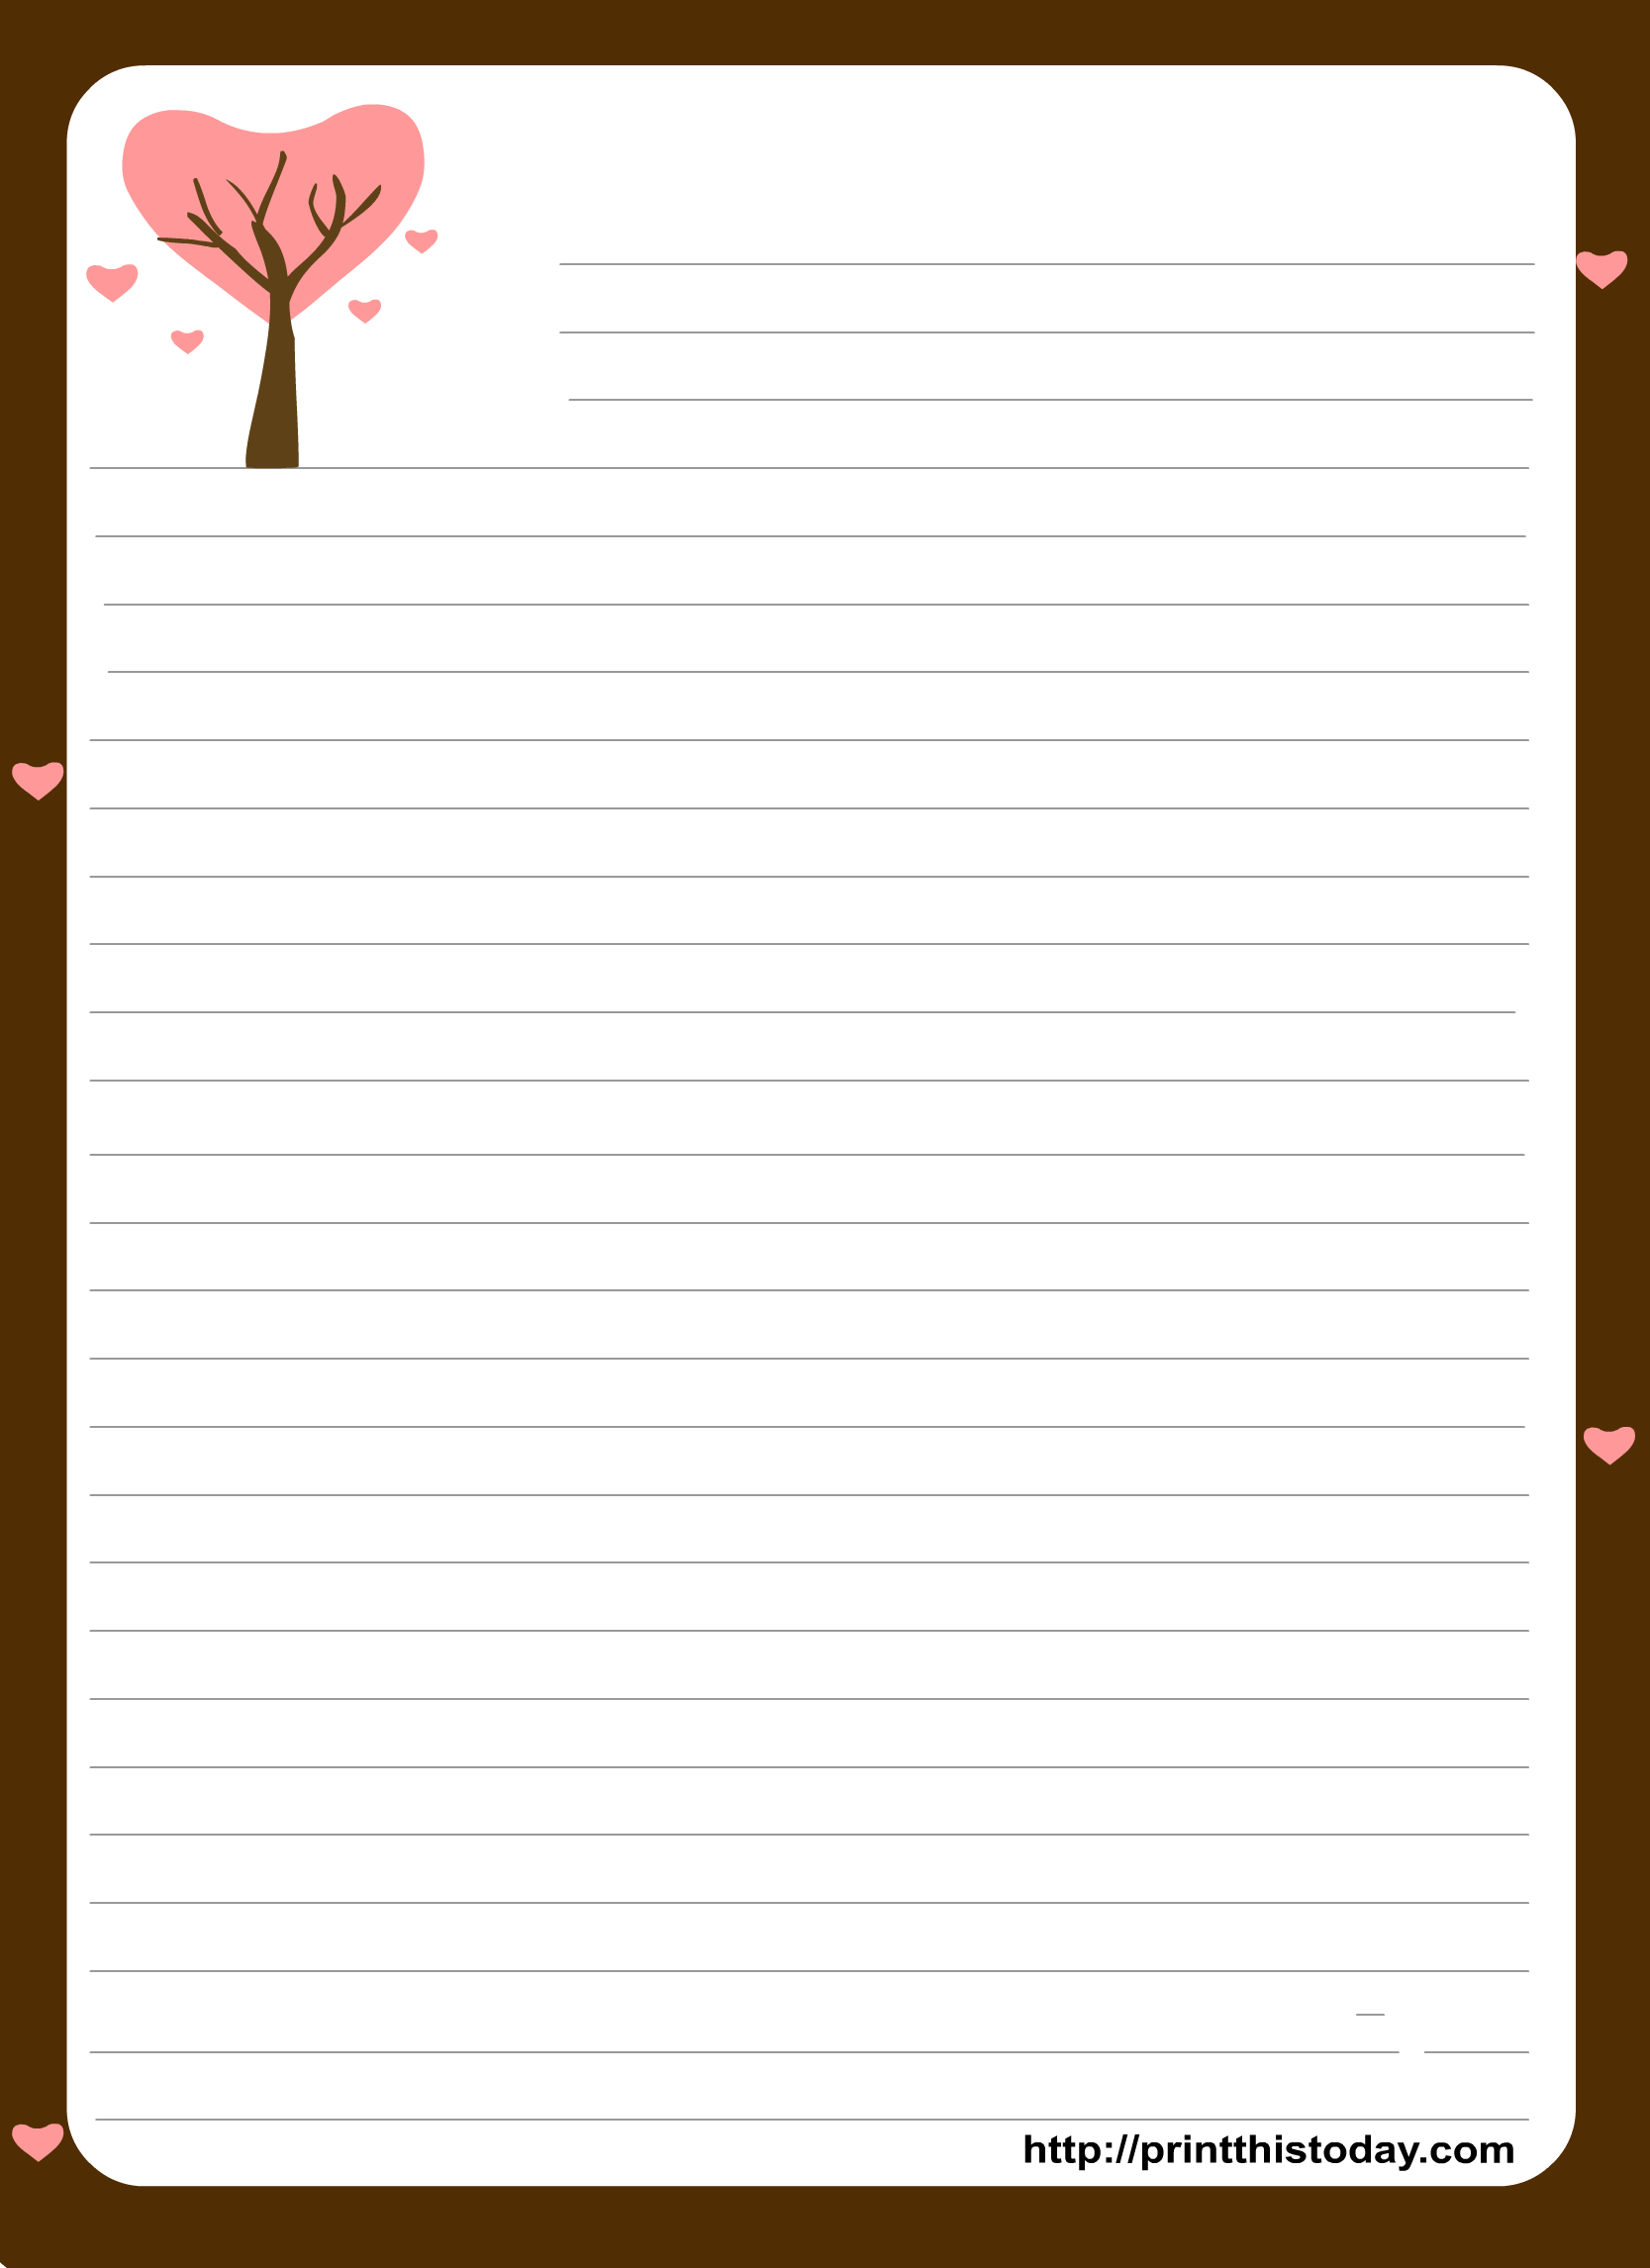 7 Best Images of Cute Note Printable Template - Cute Note ...